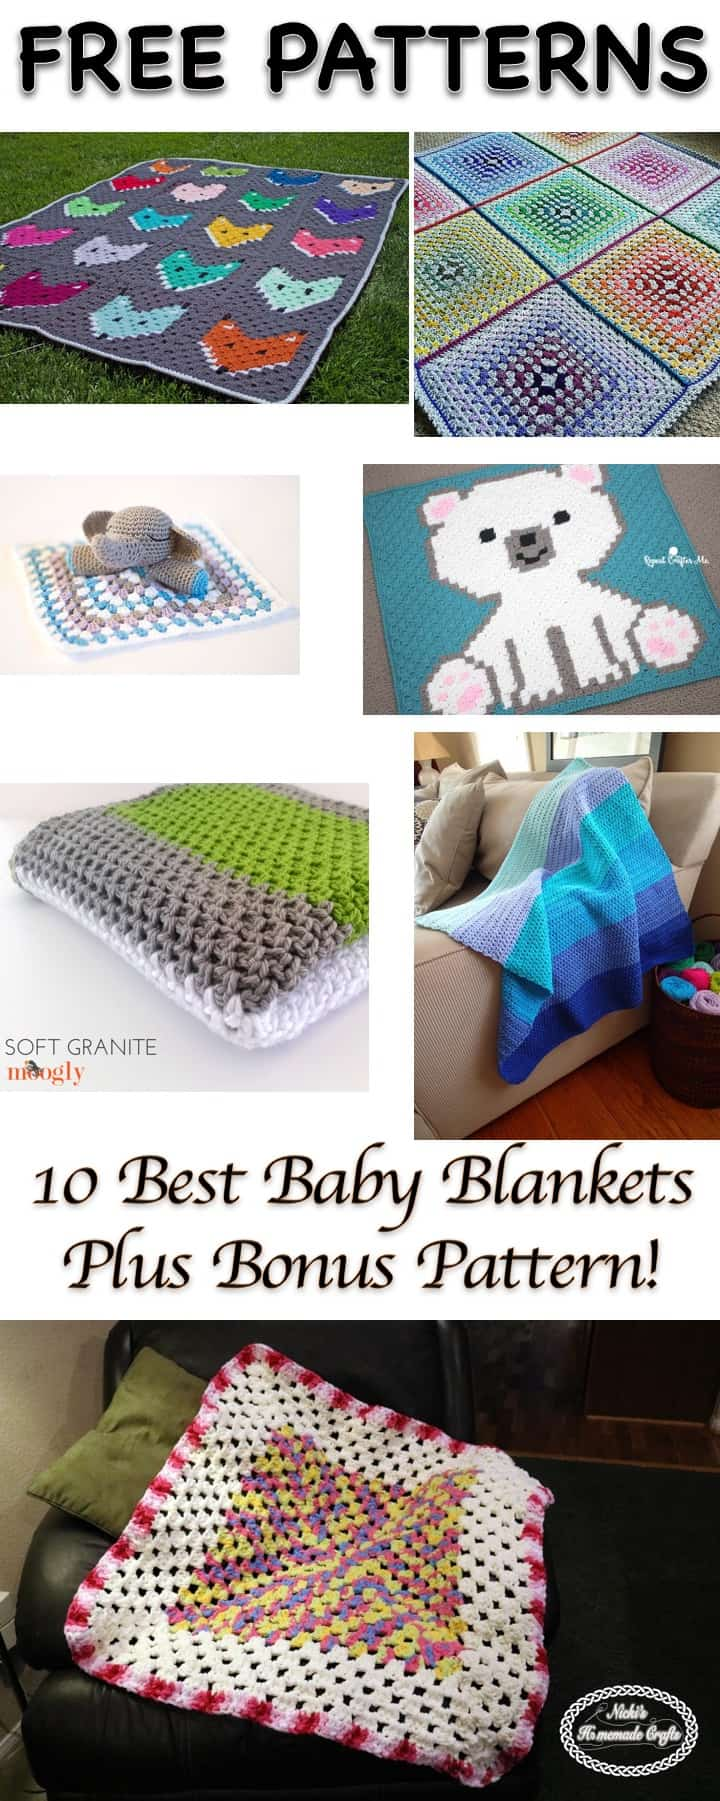 10 Best Baby Blanket Patterns - All Free Crochet Patterns - Nickis Homemade Crafts-9799